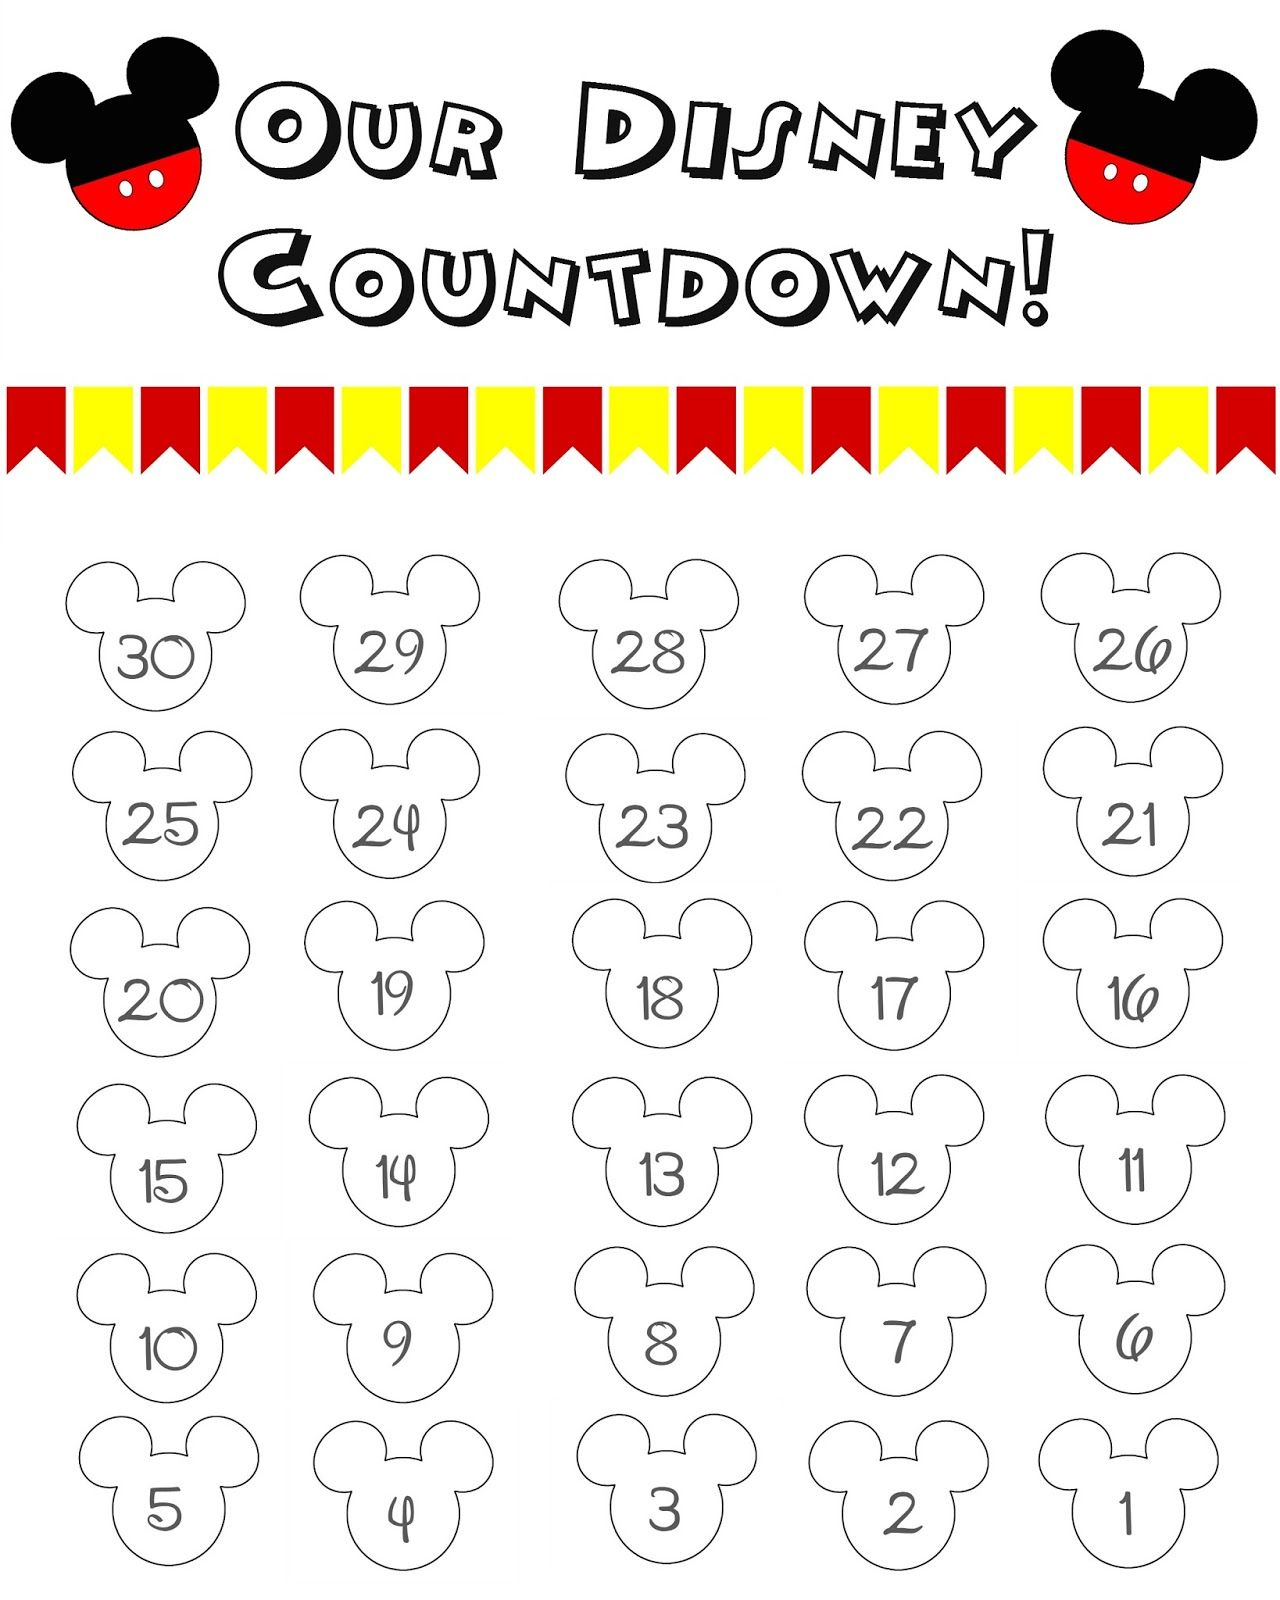 Printable Countdown Calendar That Are Sweet | Darryl's Blog